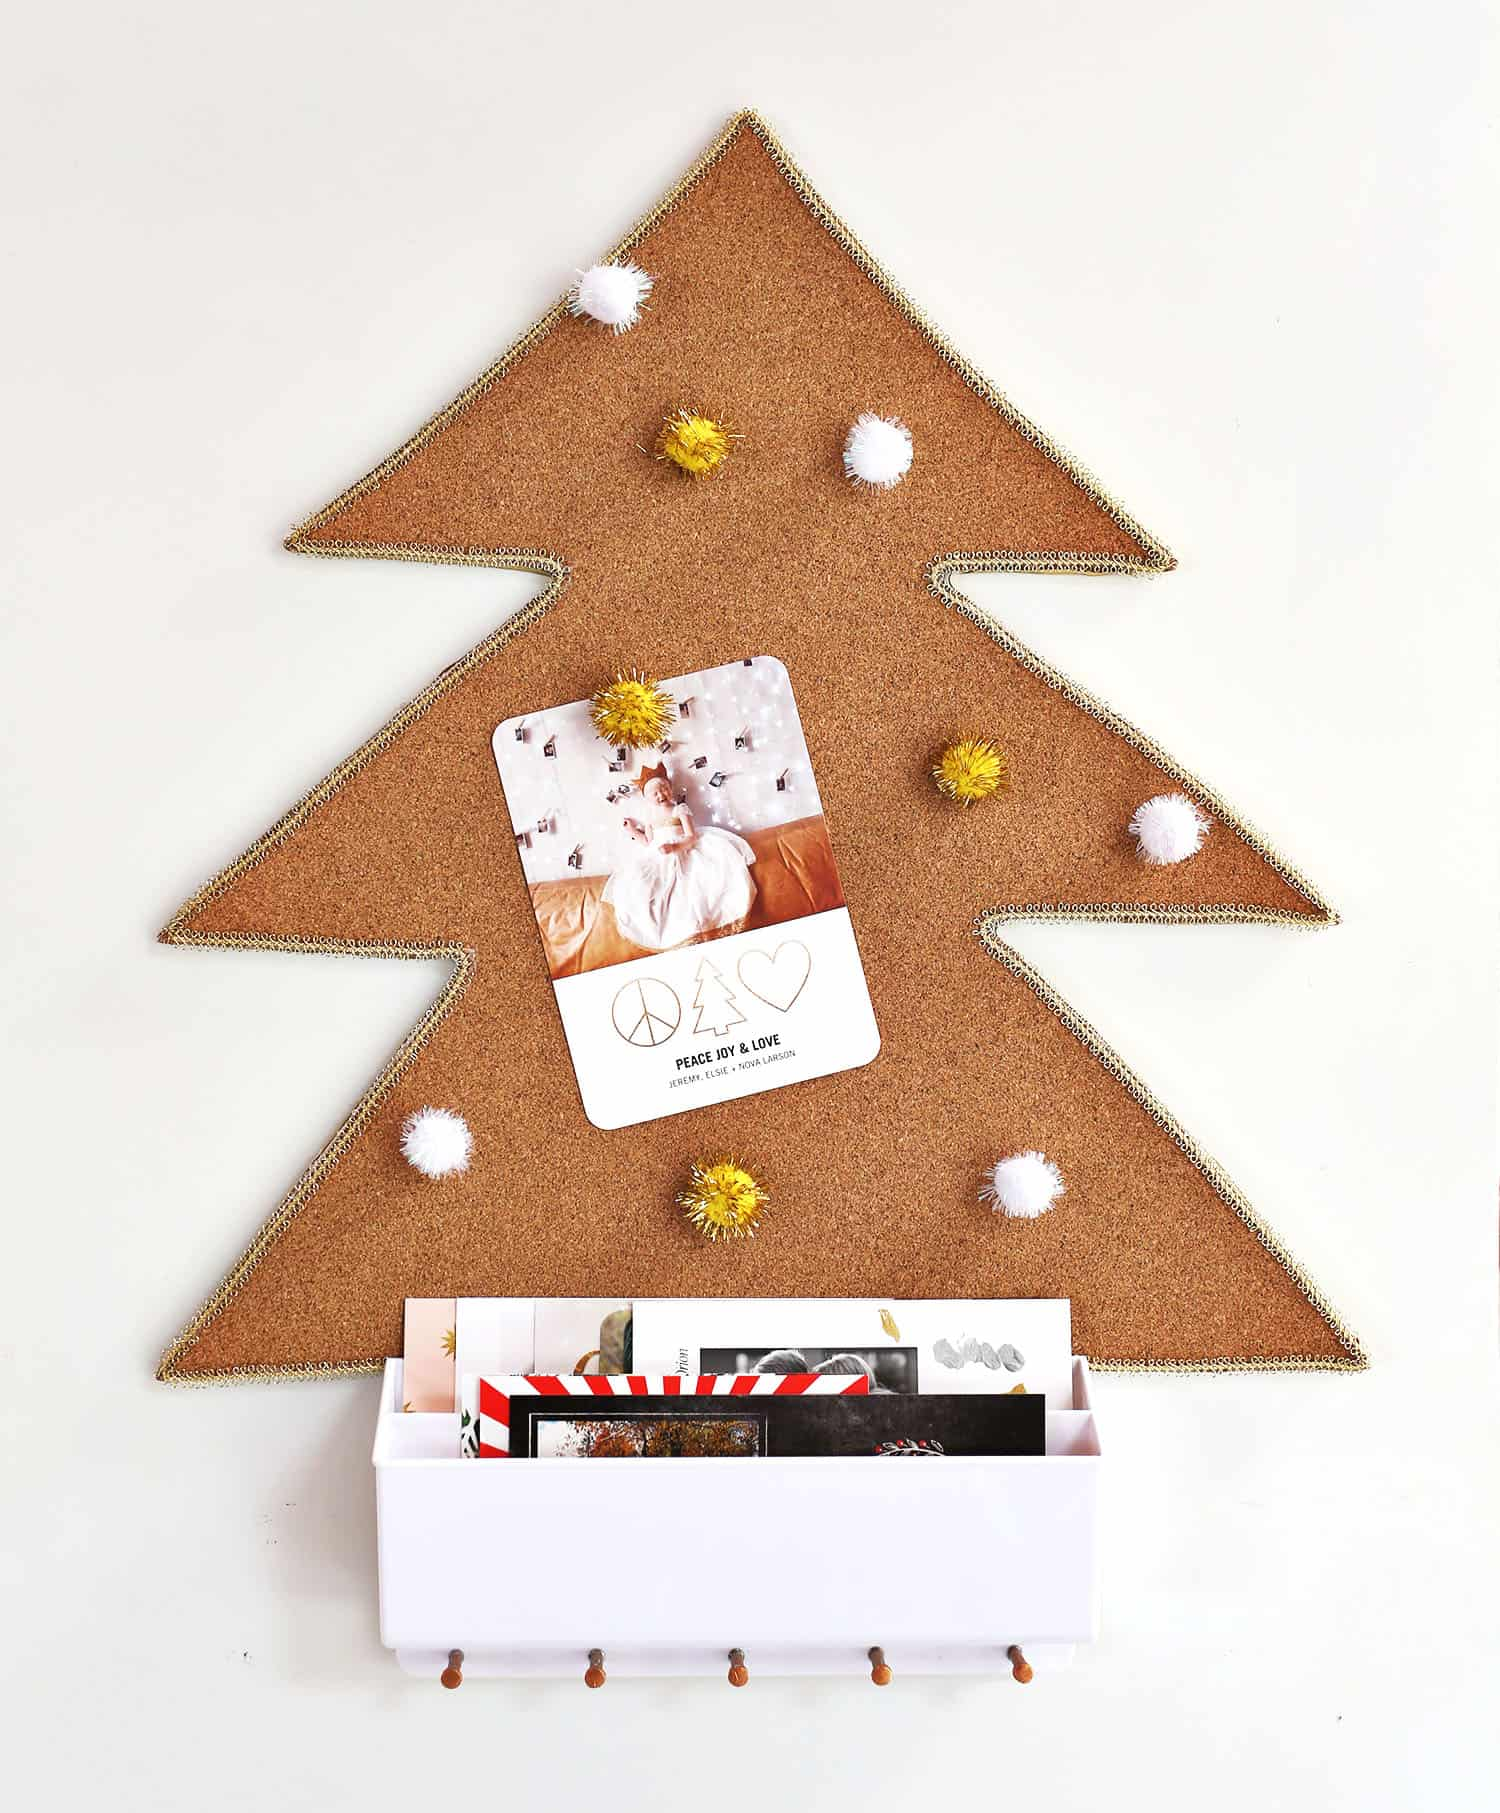 16 Wall Christmas Tree Ideas Apartment Therapy